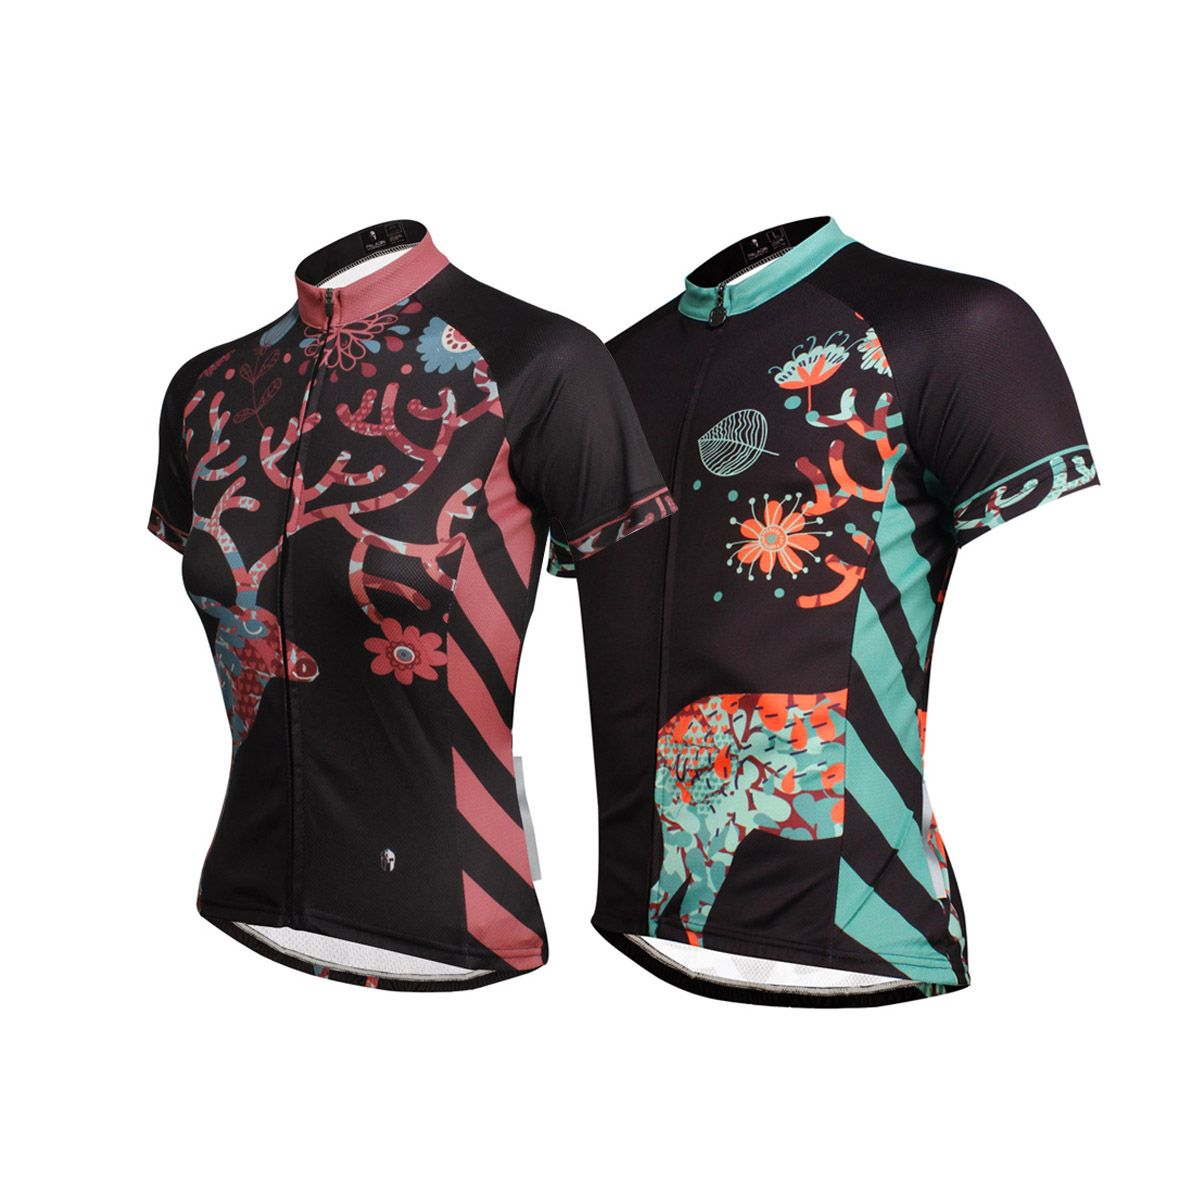 cycling clothing guide,discount cycling clothing,women's